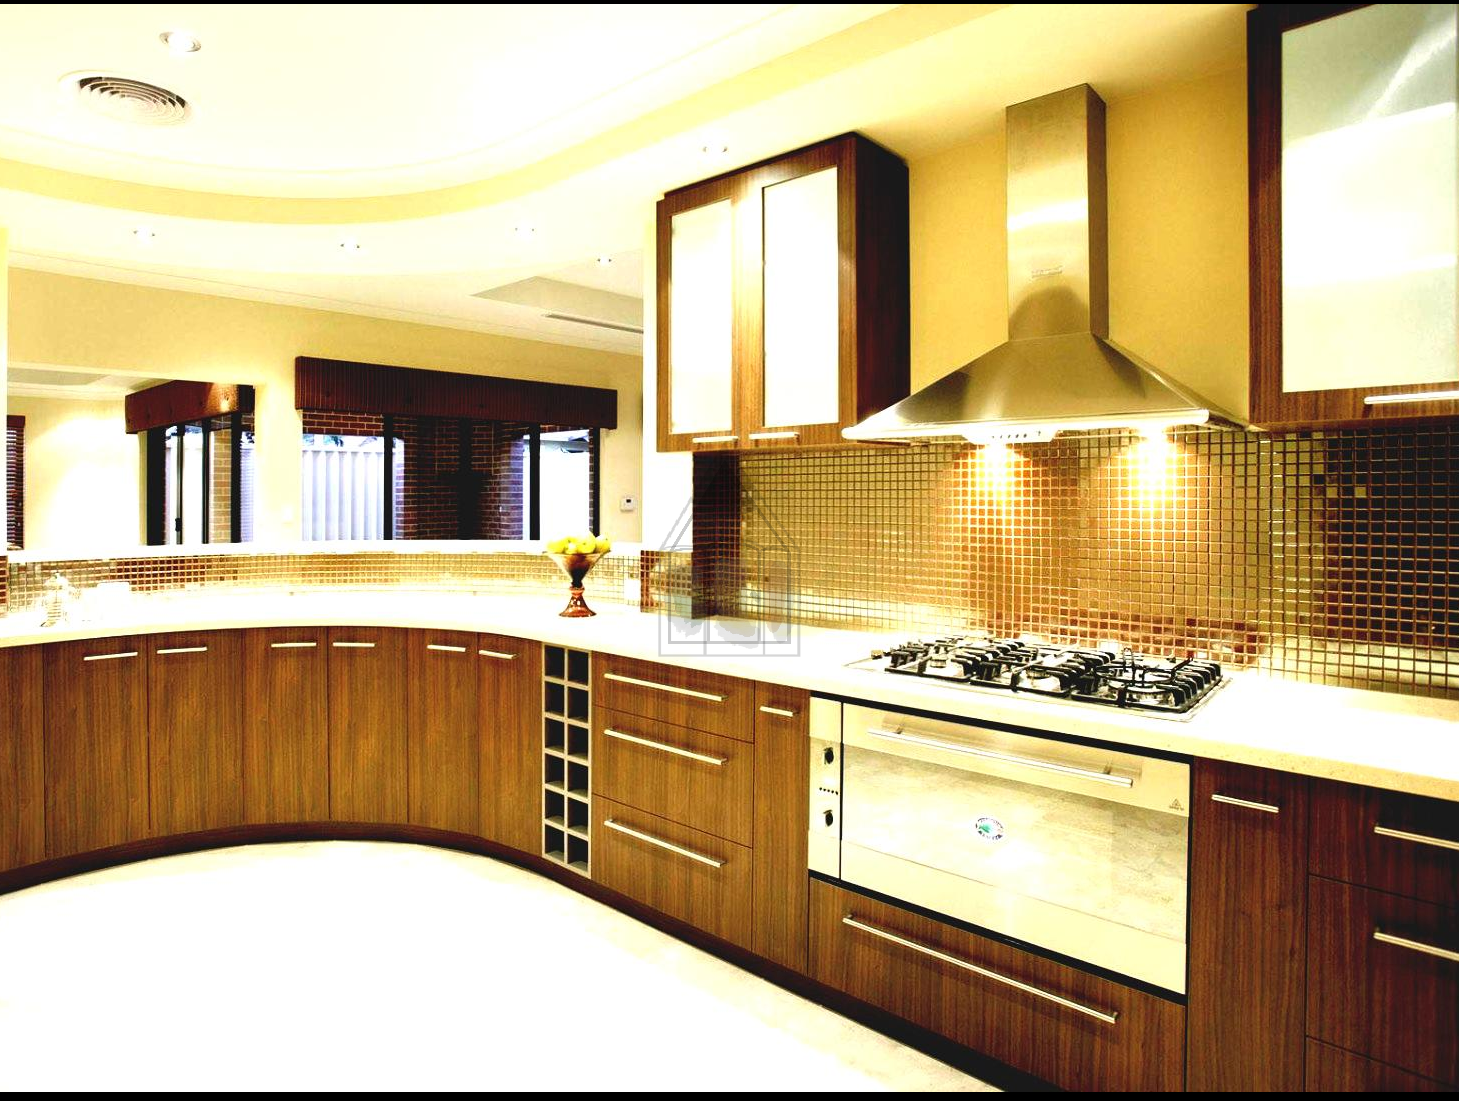 Superb Kitchenette Design Karachi, Pakistan